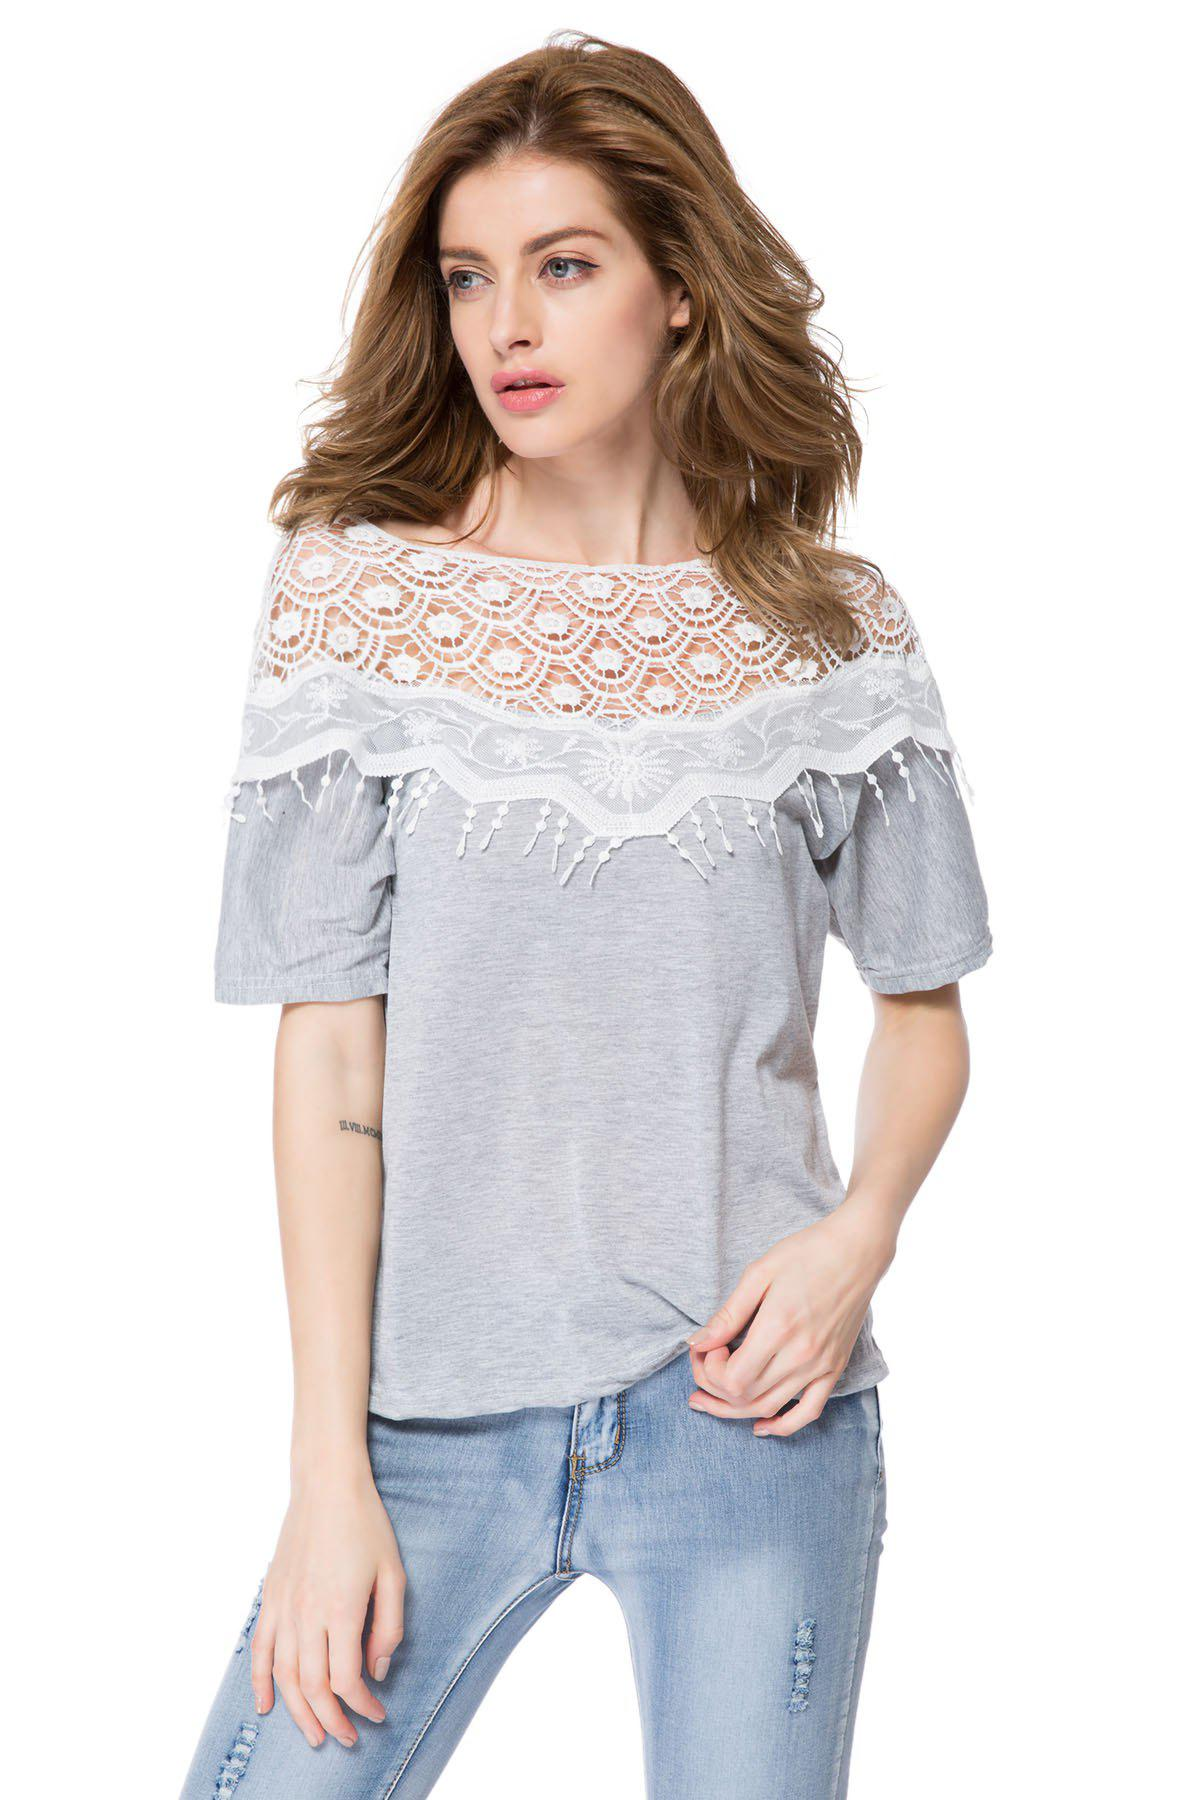 Lace Cutout Shirt Women Handmade Crochet Cape Collar Batwing Sleeve T-ShirtWOMEN<br><br>Size: M; Color: GRAY; Material: Cotton Blends; Shirt Length: Long; Sleeve Length: Half; Collar: Scoop Neck; Style: Casual; Season: Spring,Summer; Embellishment: Lace; Pattern Type: Patchwork; Weight: 0.160kg; Package Contents: 1 x T-Shirt;